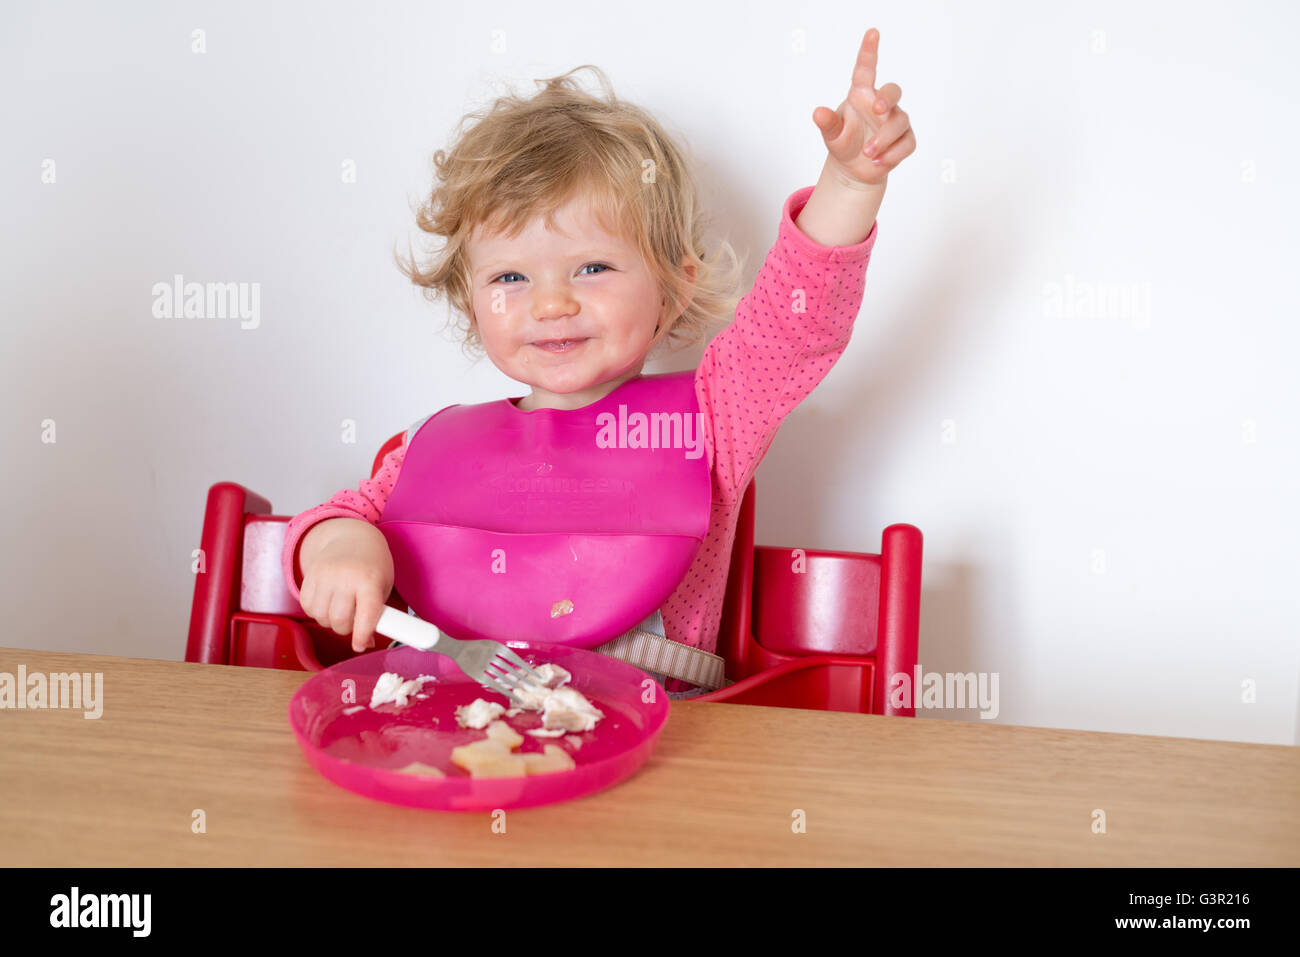 One year old baby sitting in high chair and eating meal, England, UK